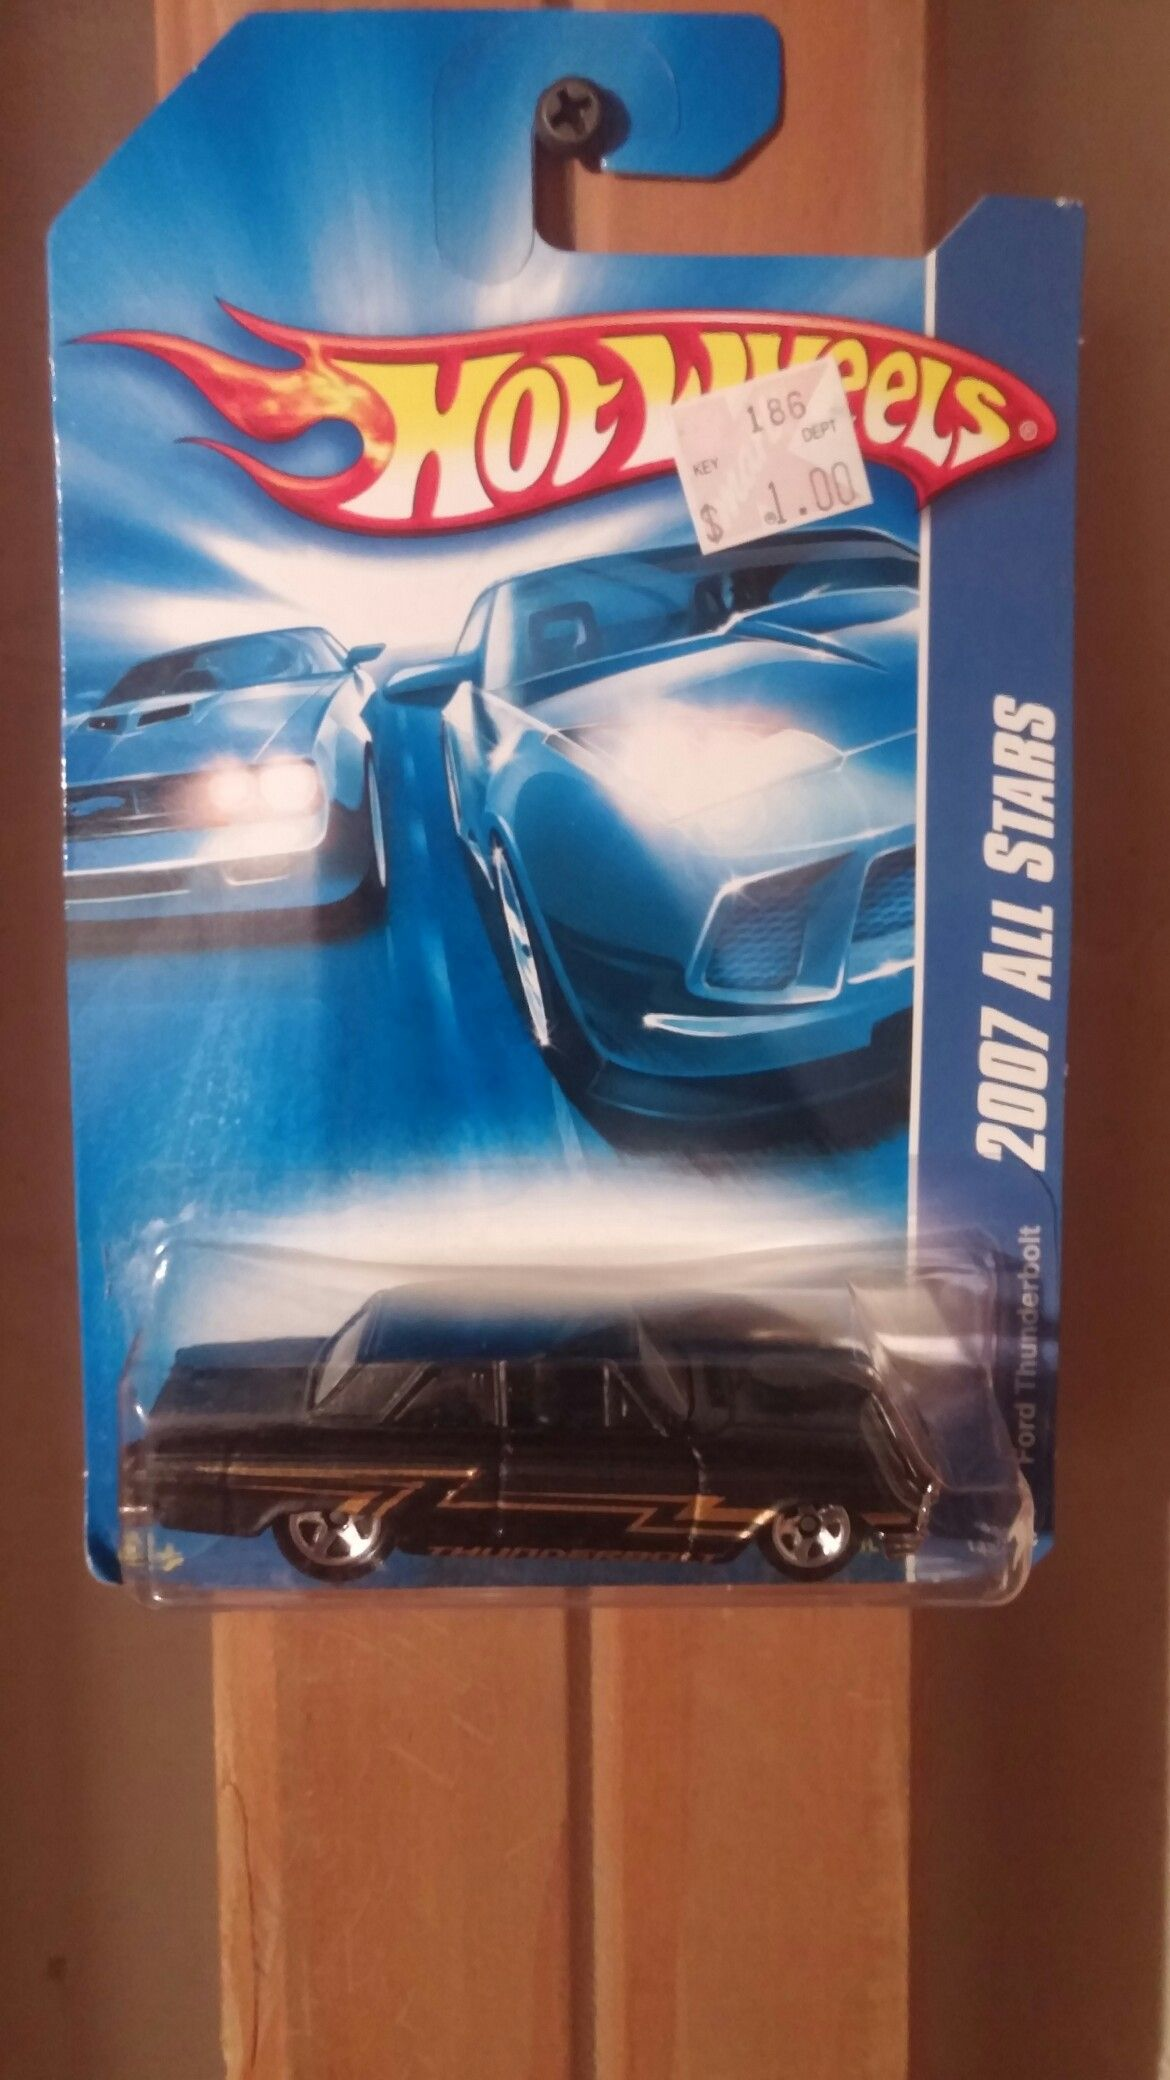 Pin by Mitch Morris on Hot Wheels Hot wheels, Ford, Toys